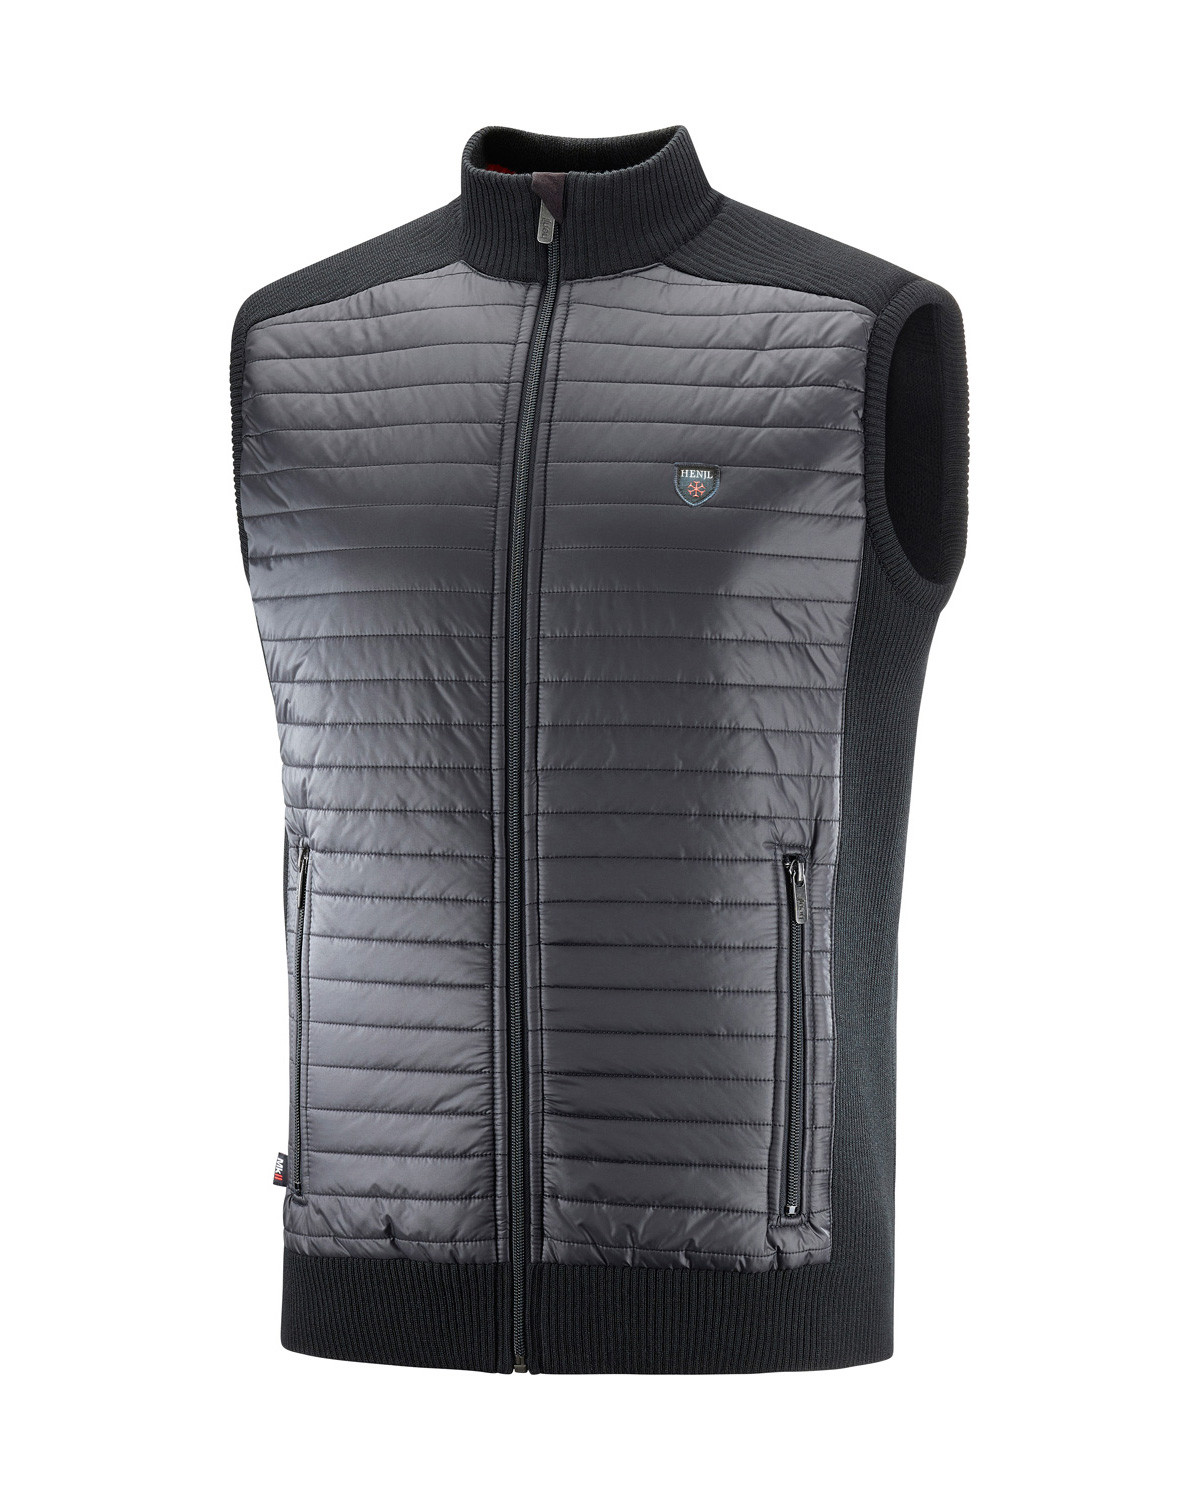 exceptional range of colors modern techniques presenting Man Decca Vest - Made in Europe | HENJL